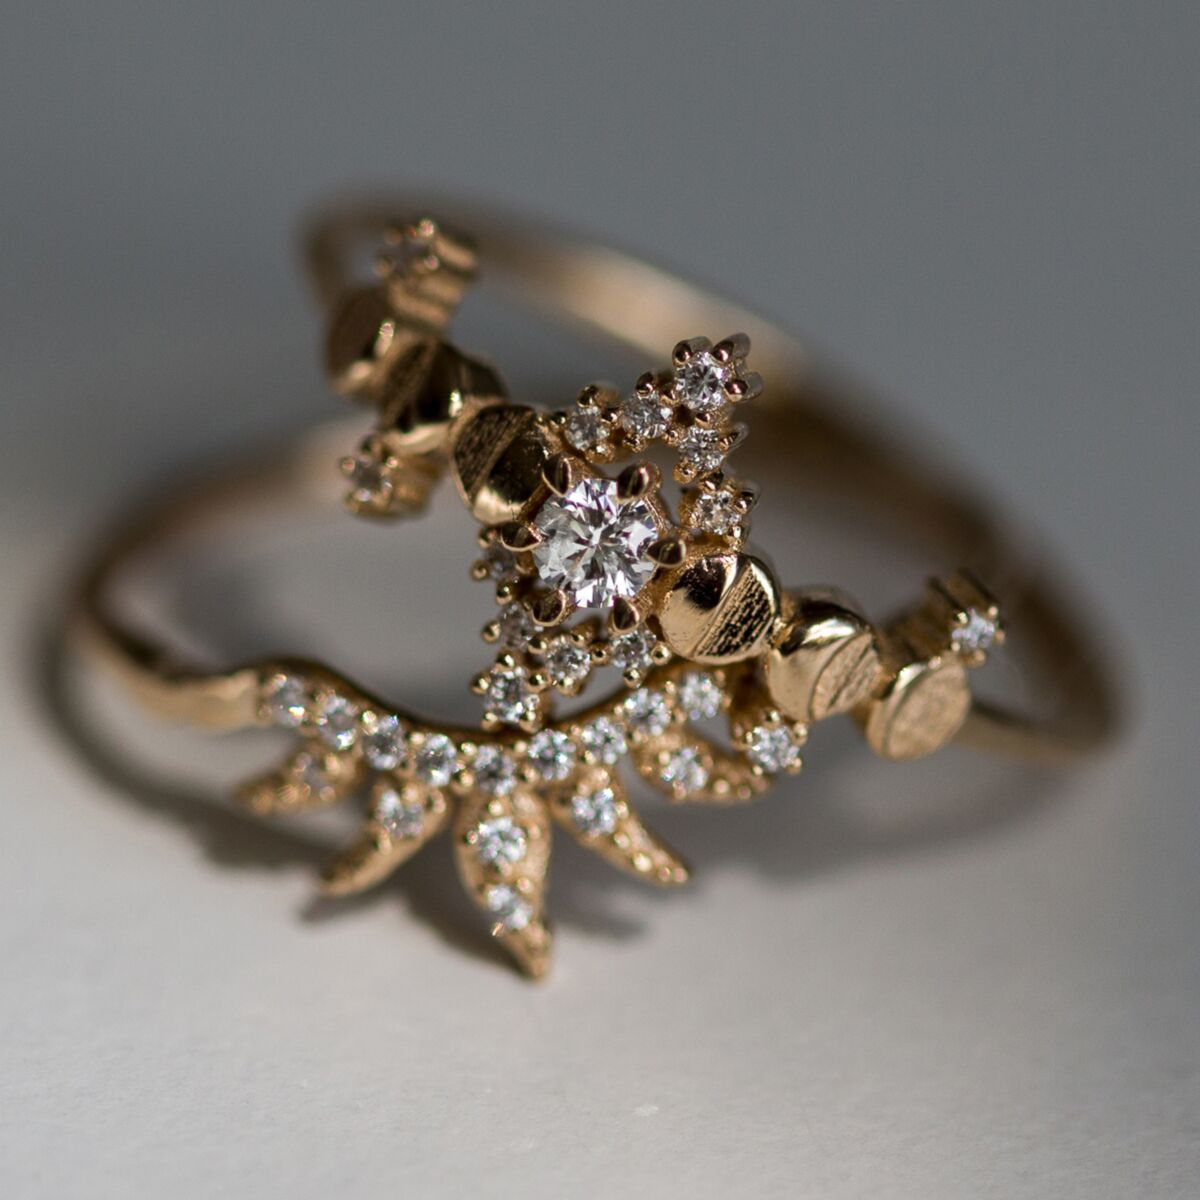 Cosmic Witch Ring image